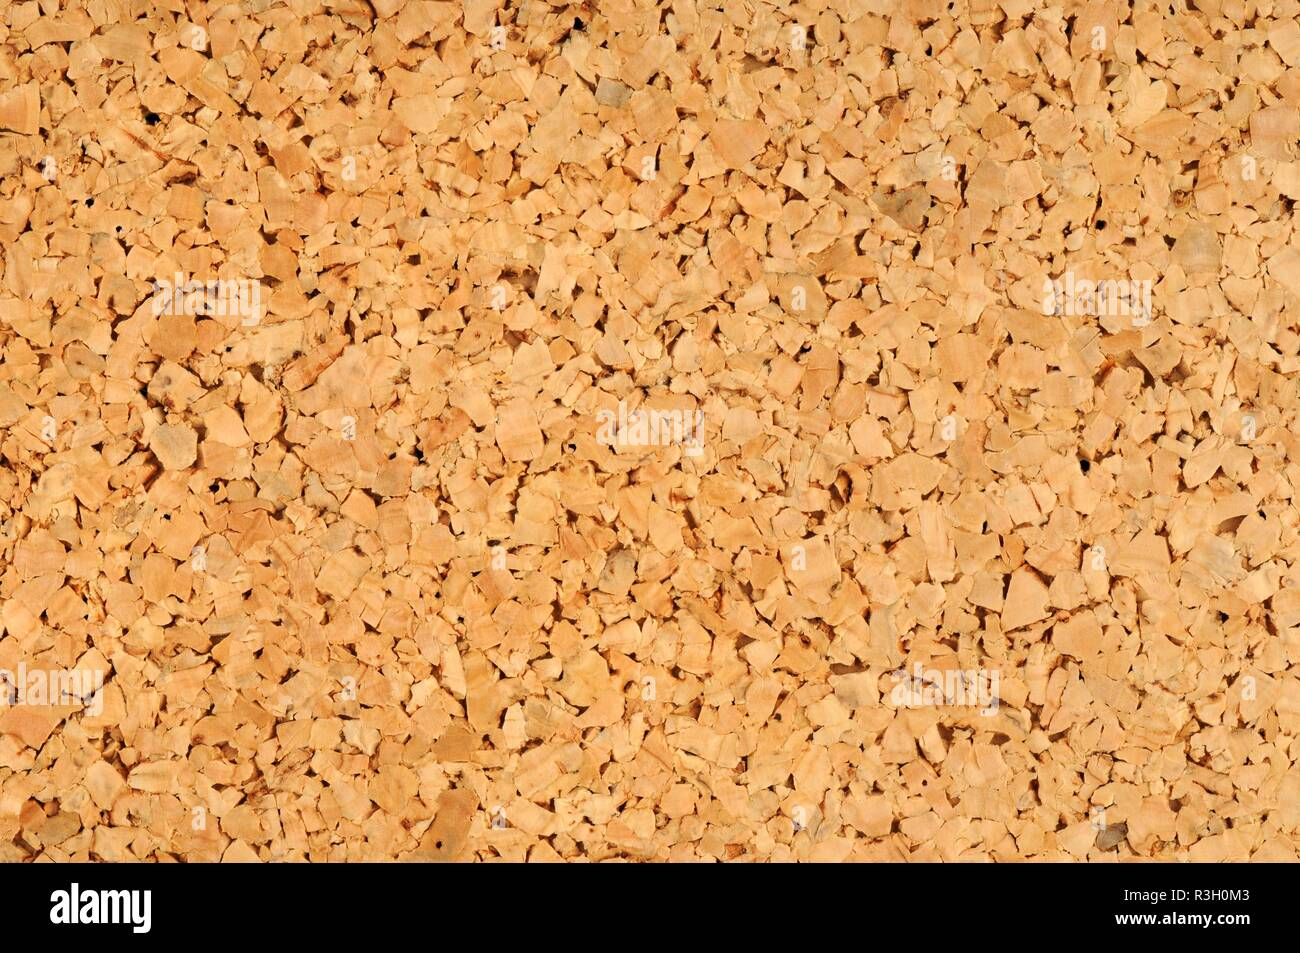 Pinnwand Kork Kork Pinnwand Stock Photos Kork Pinnwand Stock Images Alamy